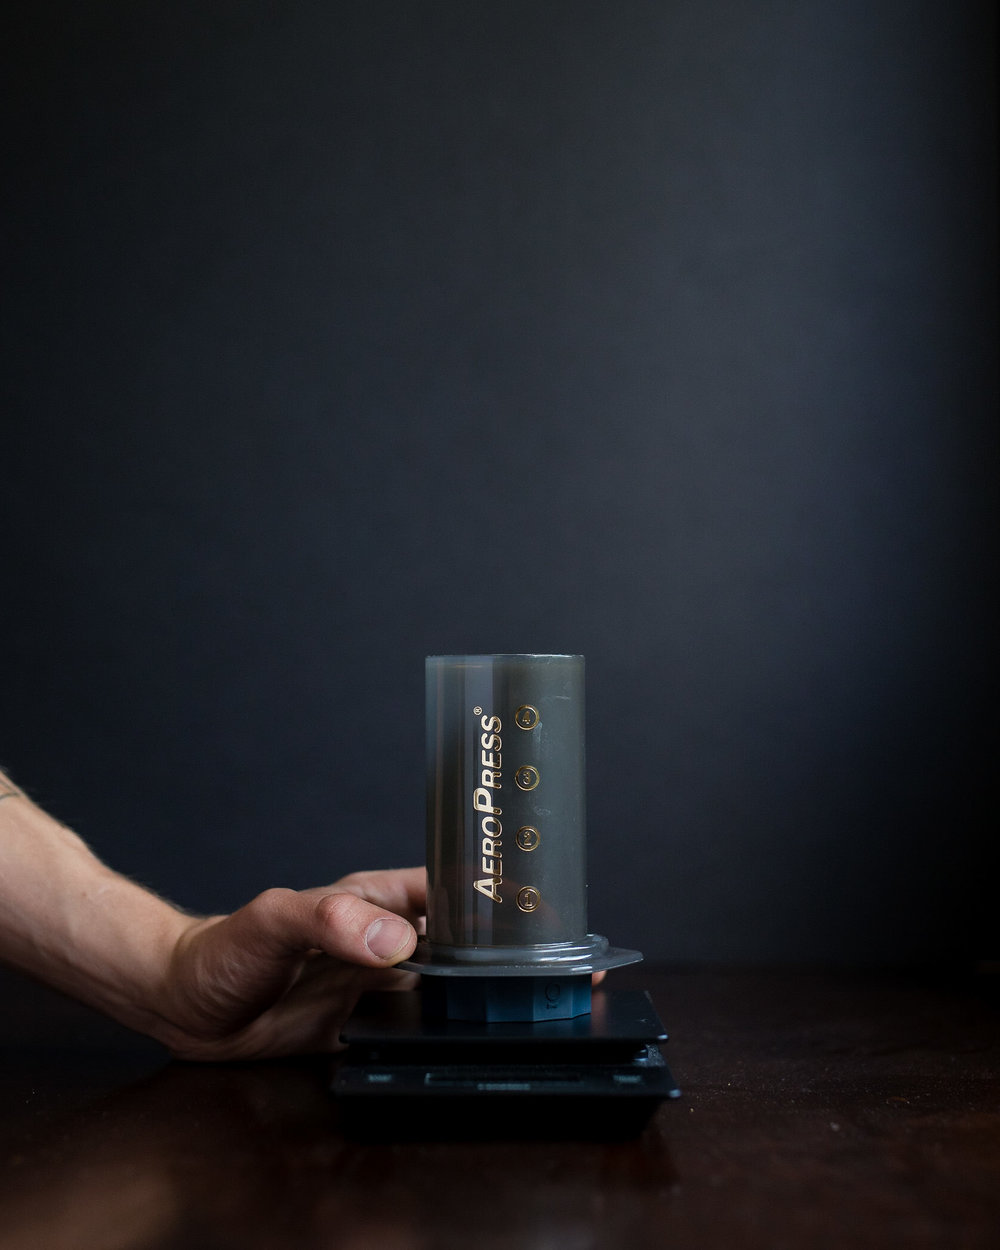 HandsomeWade-Aeropress-Brew-Guide-5.jpg